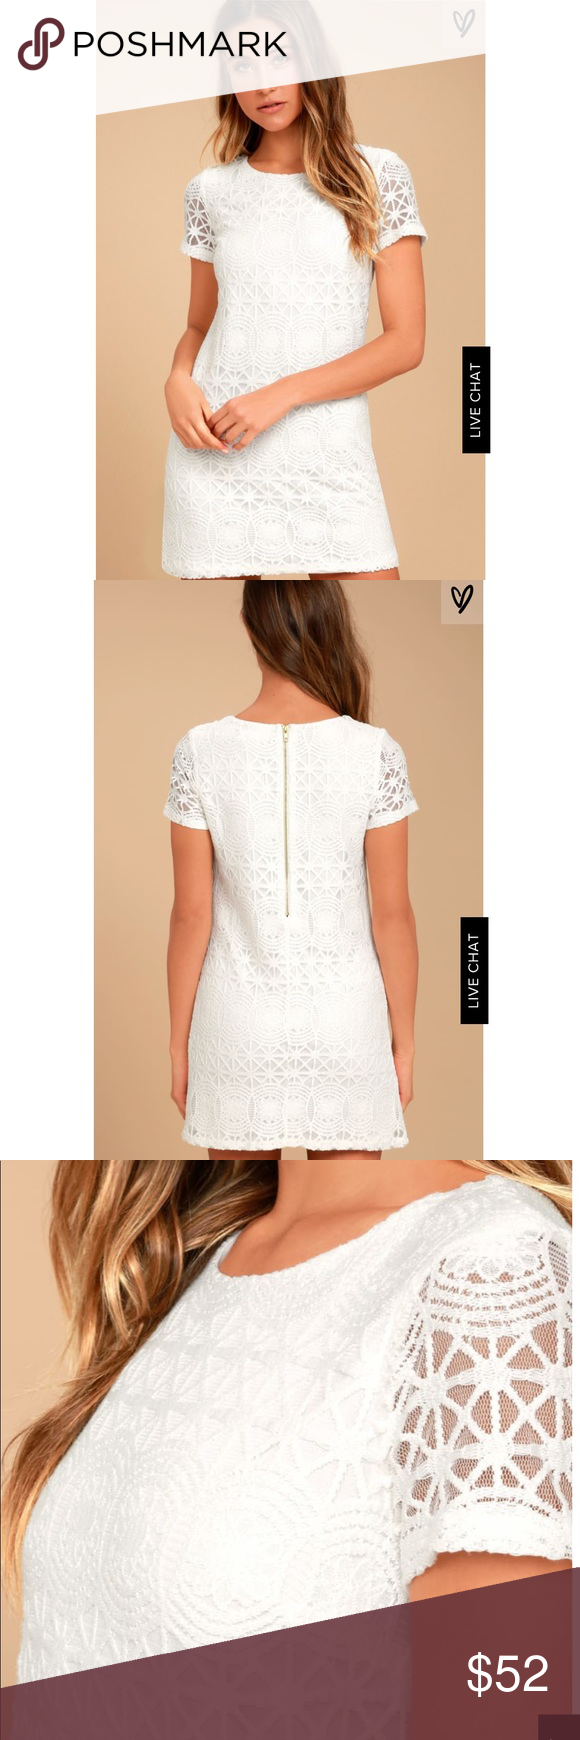 Lulus Love You For Eternity White Lace Shift Dress White Lace Shift Dress Lace Shift Dress Shift Dress [ 1740 x 580 Pixel ]